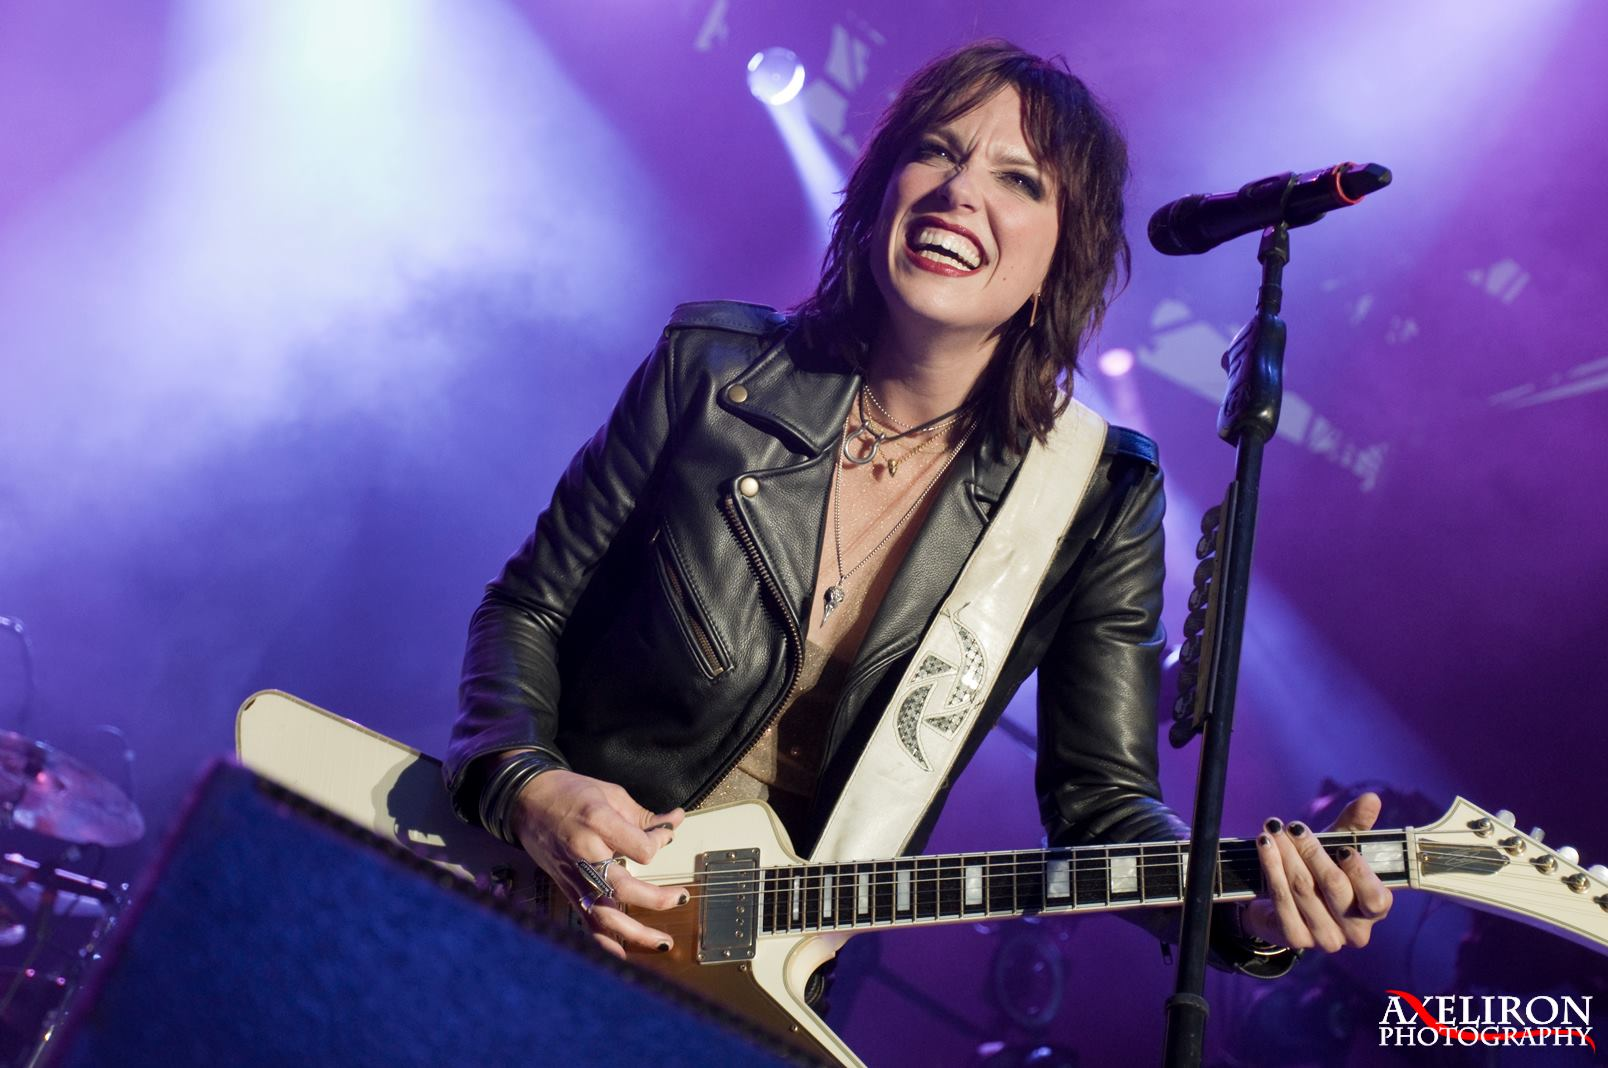 Lzzy Hale Is Seeing More Women At Halestorm Shows Since #MeToo